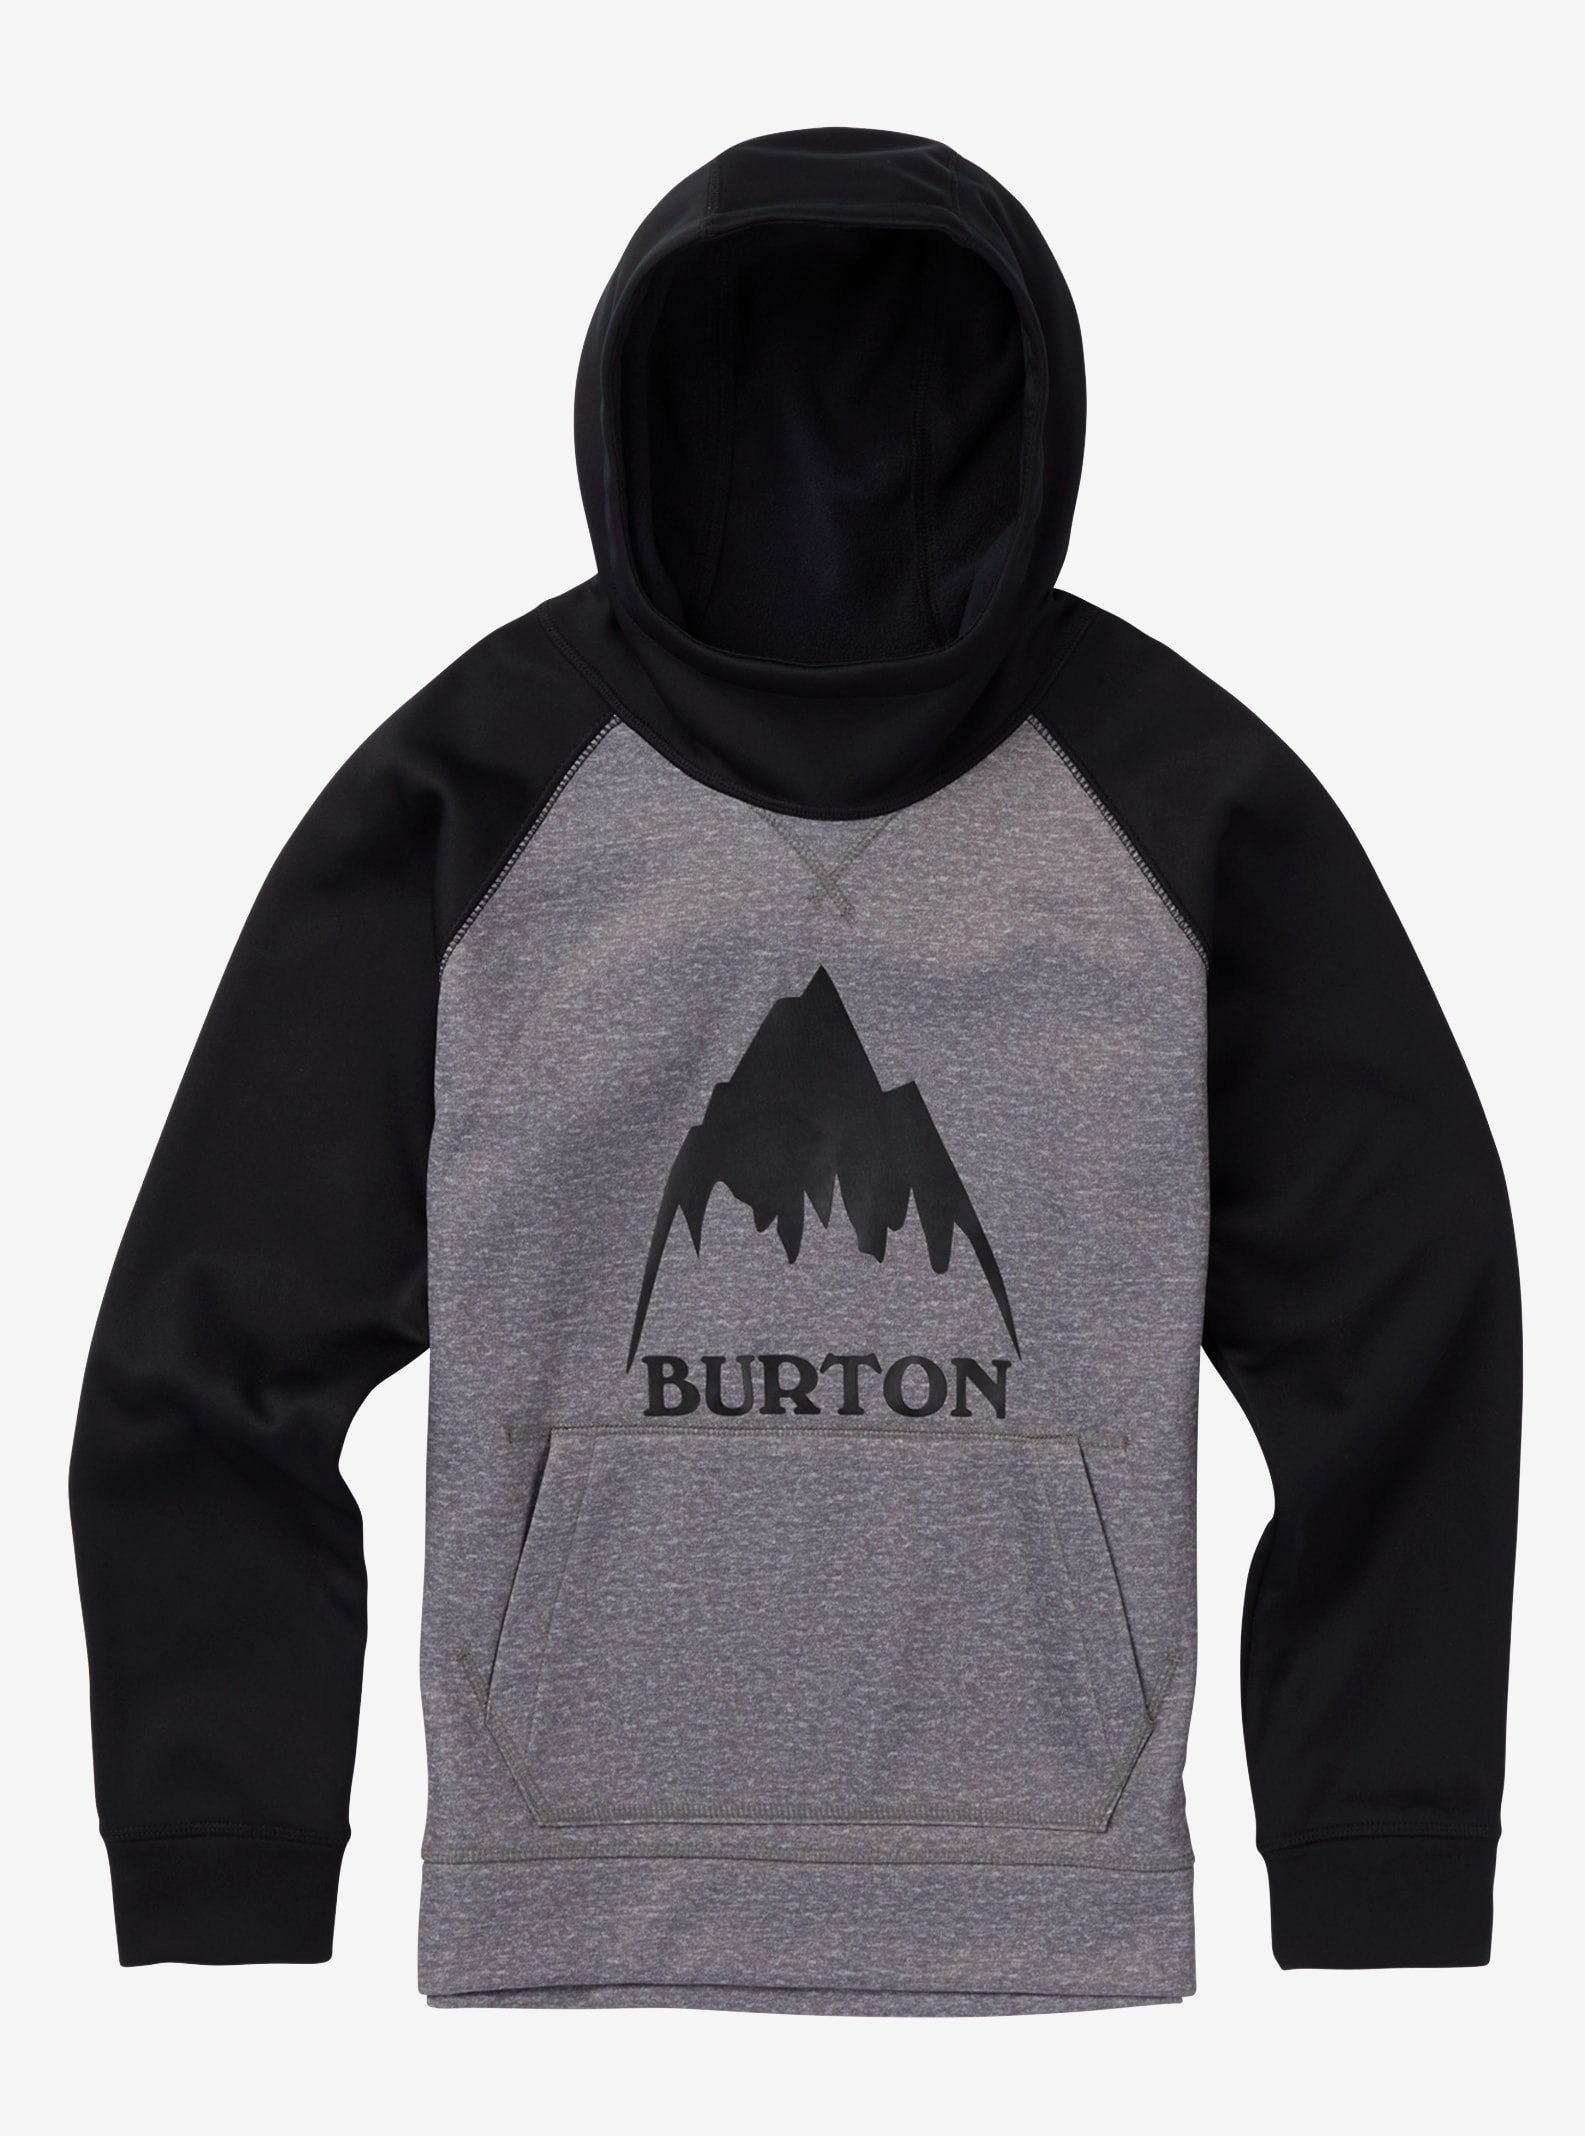 Boys' Burton Crown Bonded Pullover Hoodie shown in Monument Heather